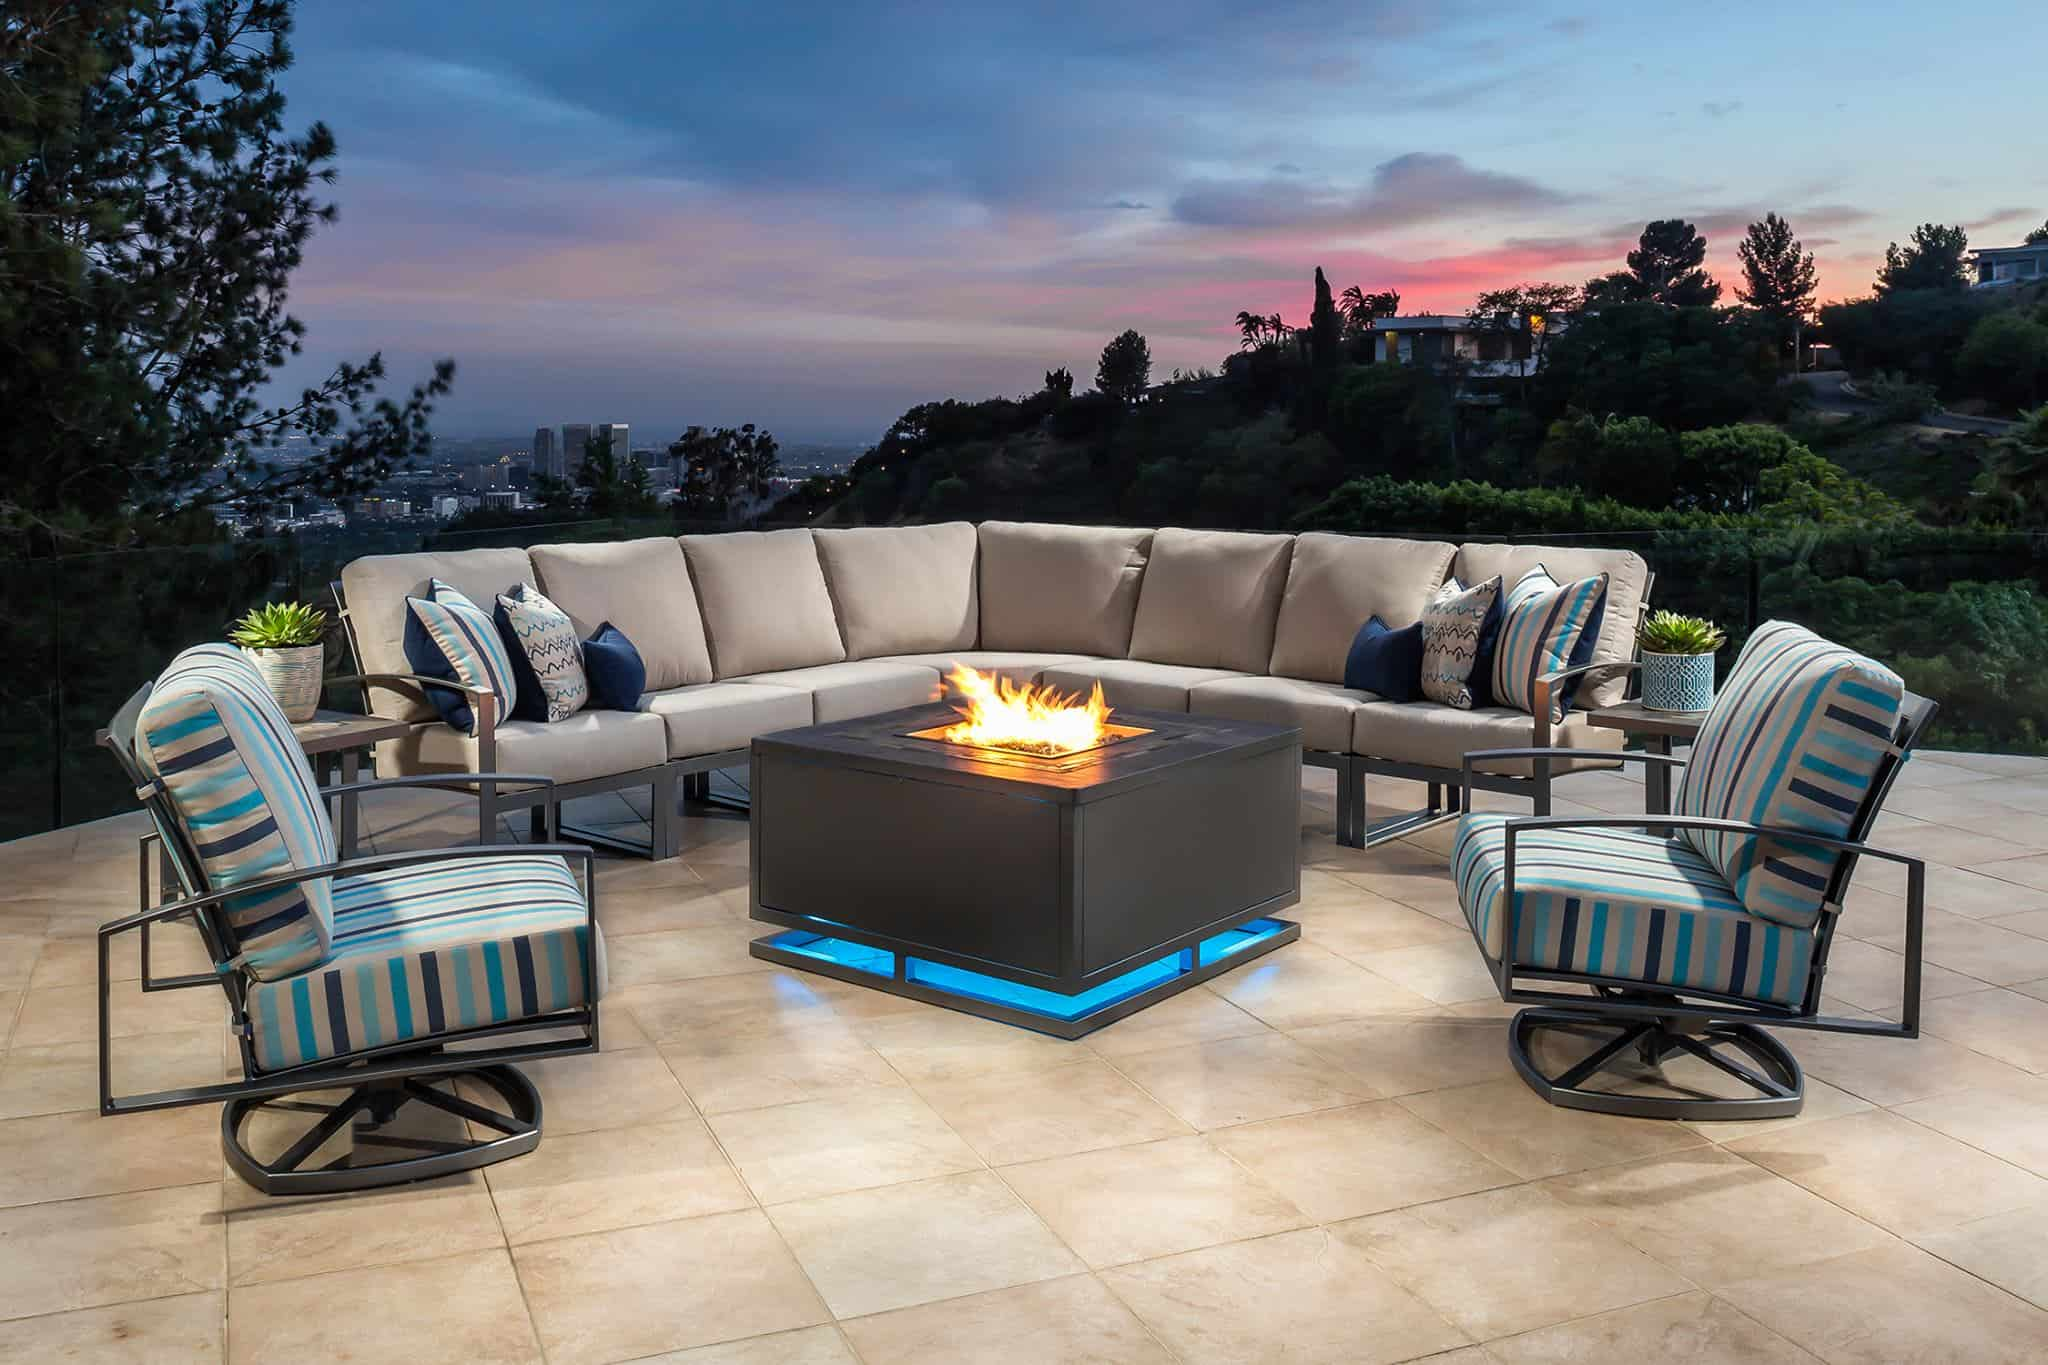 Garden Furniture Trends patio furniture trends that makes you want to take it outside VXMIIVT